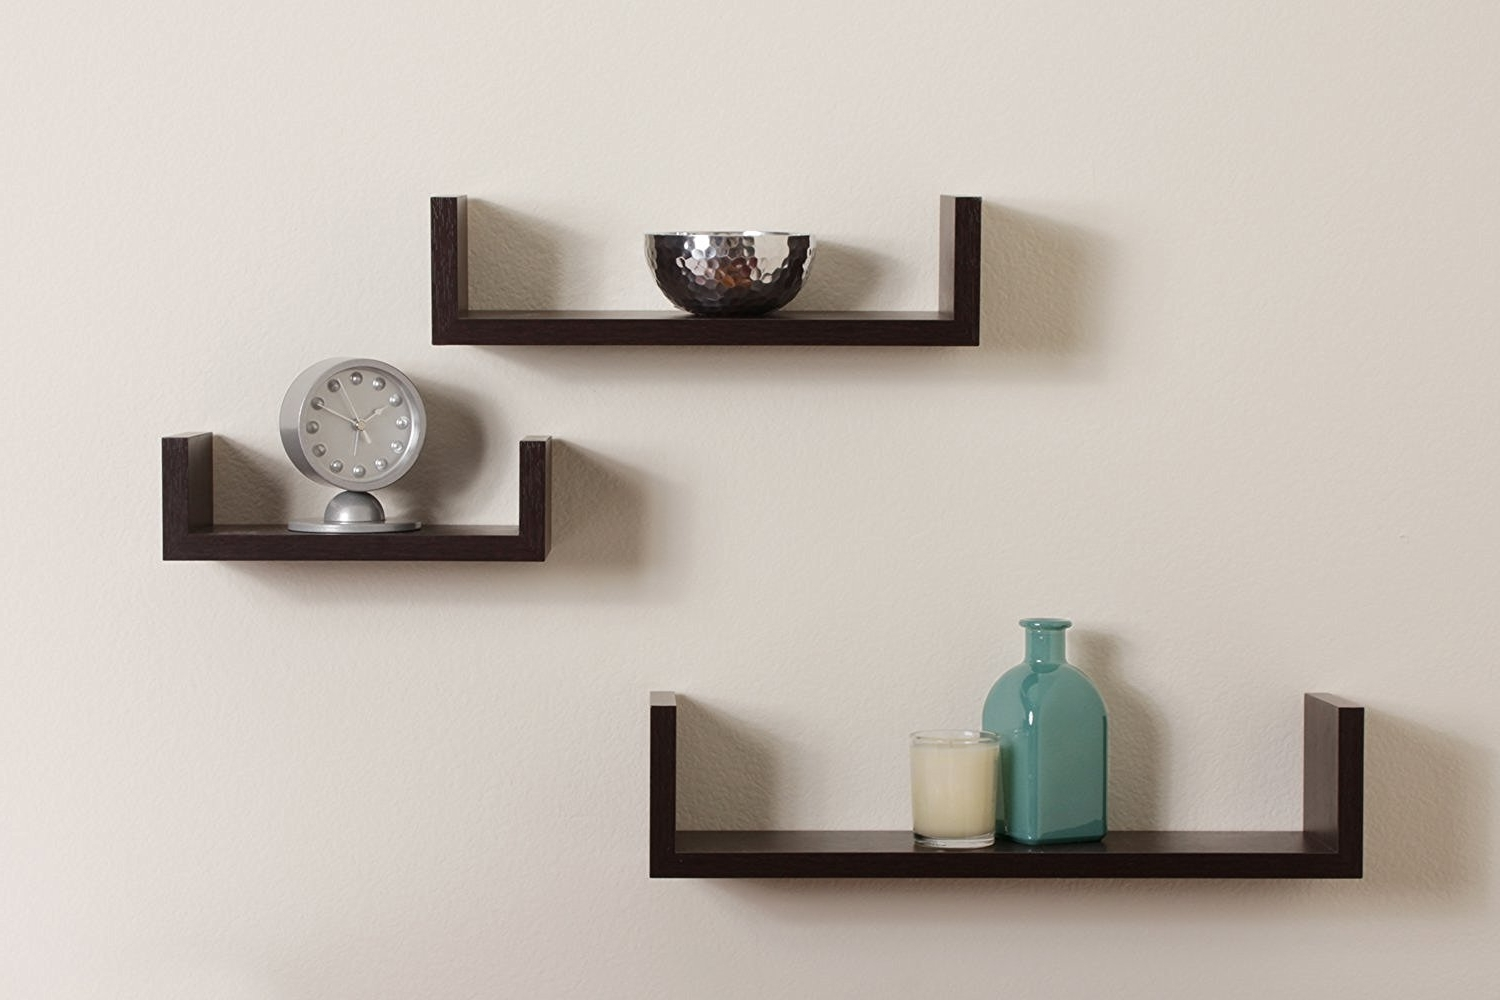 Top 16 Black Floating Wall Shelves Of 2016 2017 Review Regarding Well Known Wall Shelves (View 12 of 15)